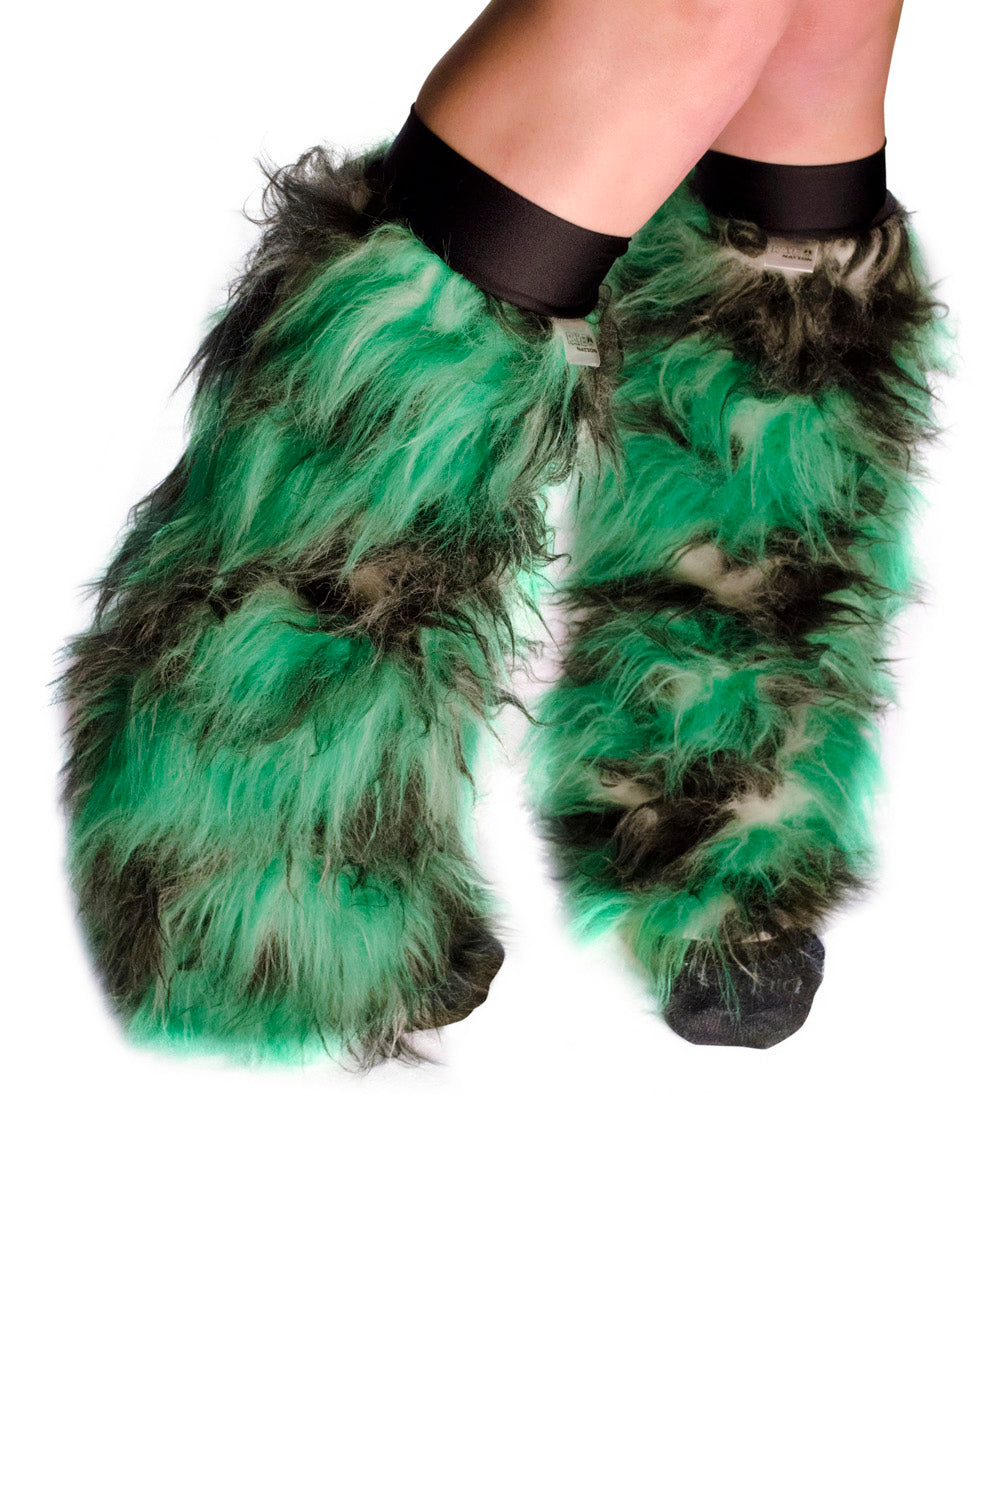 Green and Black Fluffies